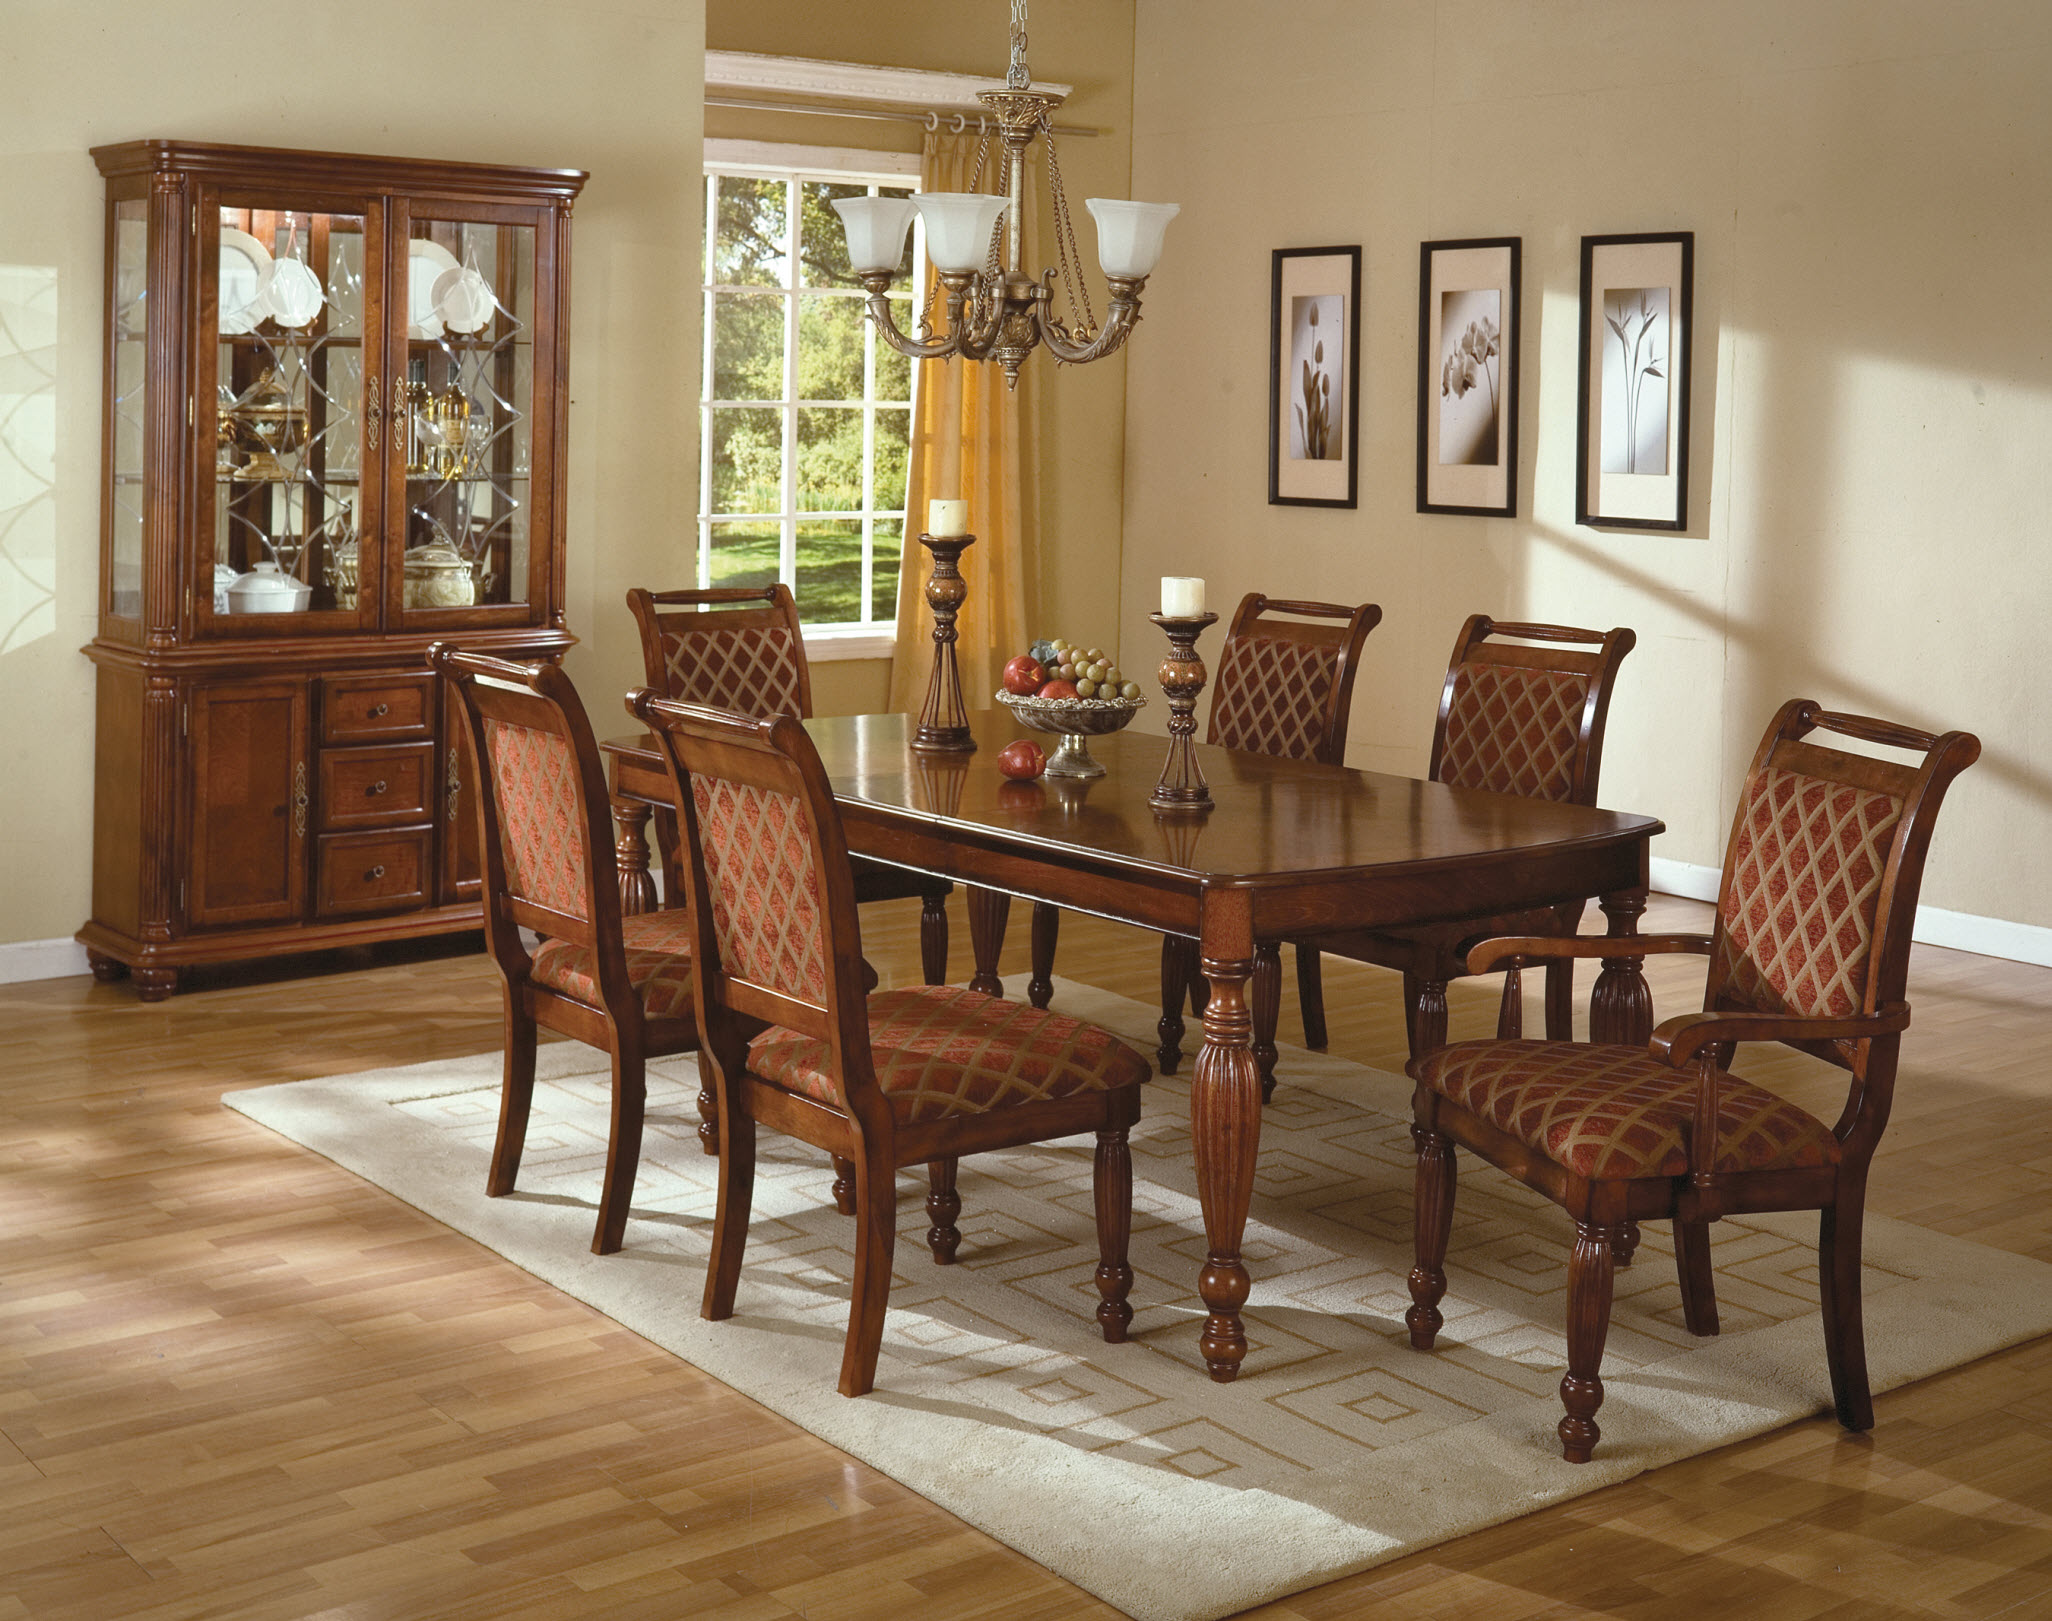 fascinating formal dining room sets for 10 photo cragfont buy luxury formal dining room table sets dr rm riverdale leg cherry 5. beautiful ideas. Home Design Ideas